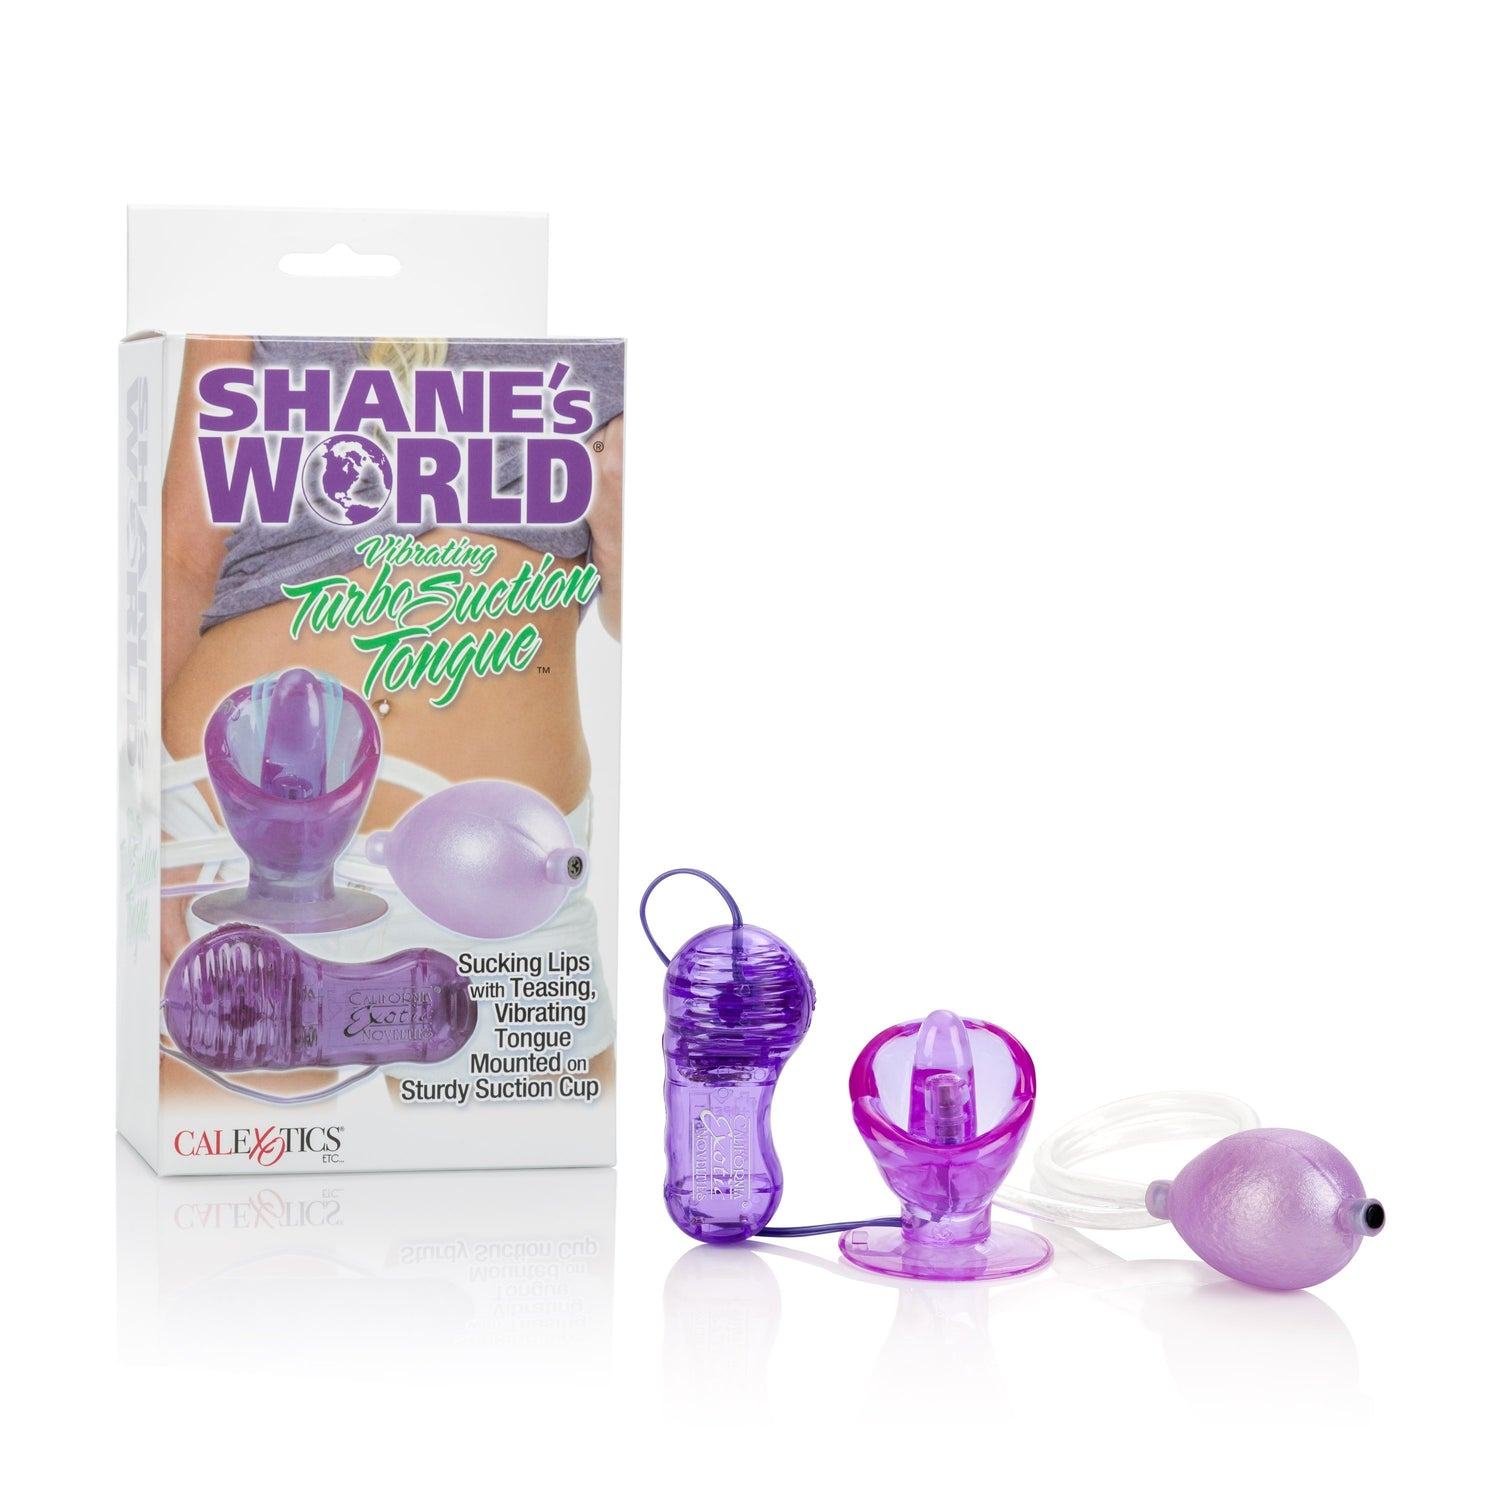 California Exotics - Shane's World Vibrating Turbo Suction Tongue Clit Massager (Purple) | CherryAffairs Singapore